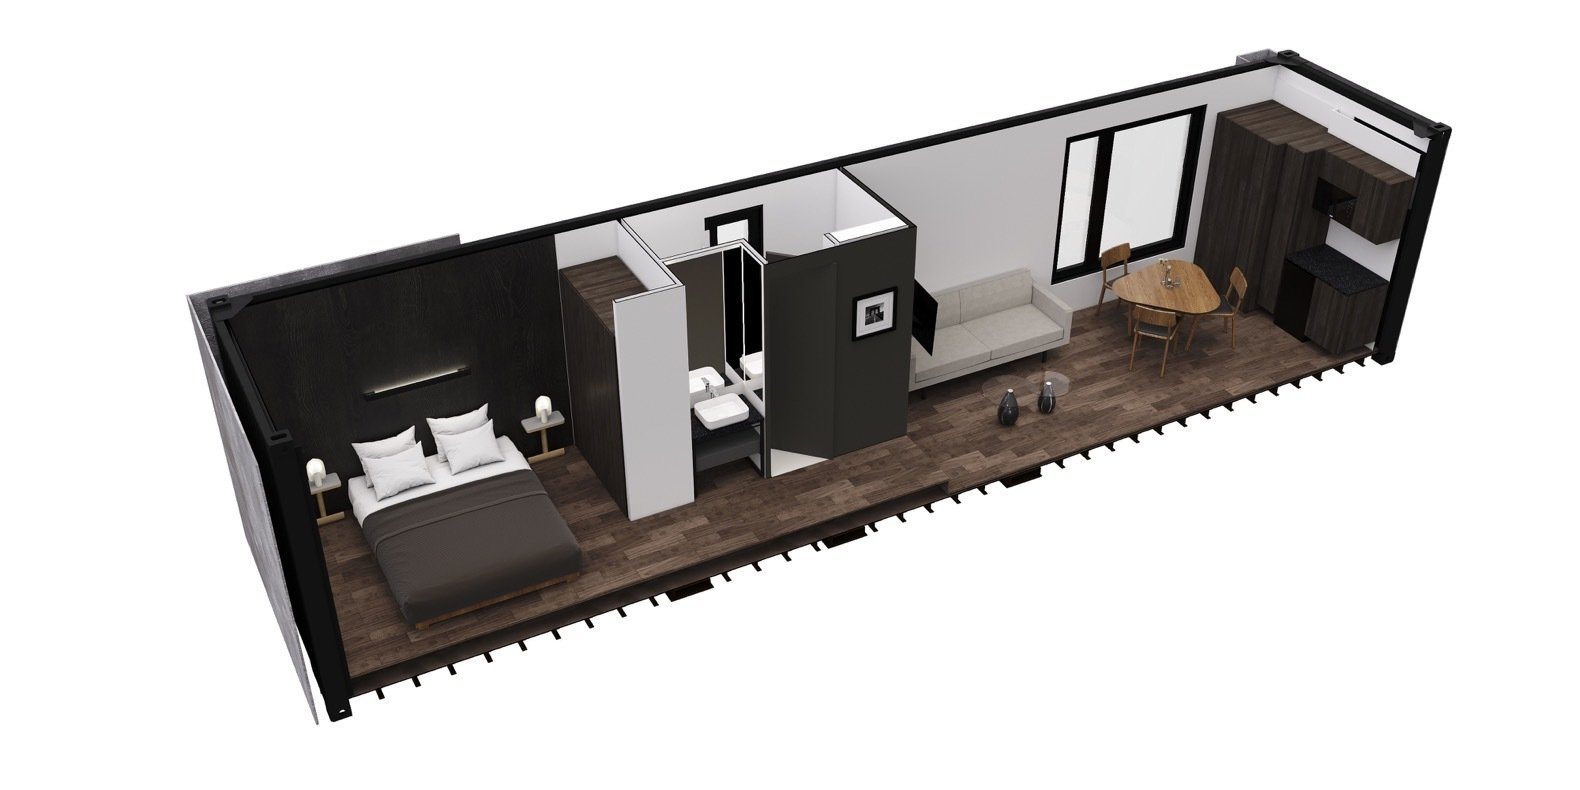 VMD shipping container home interior layout